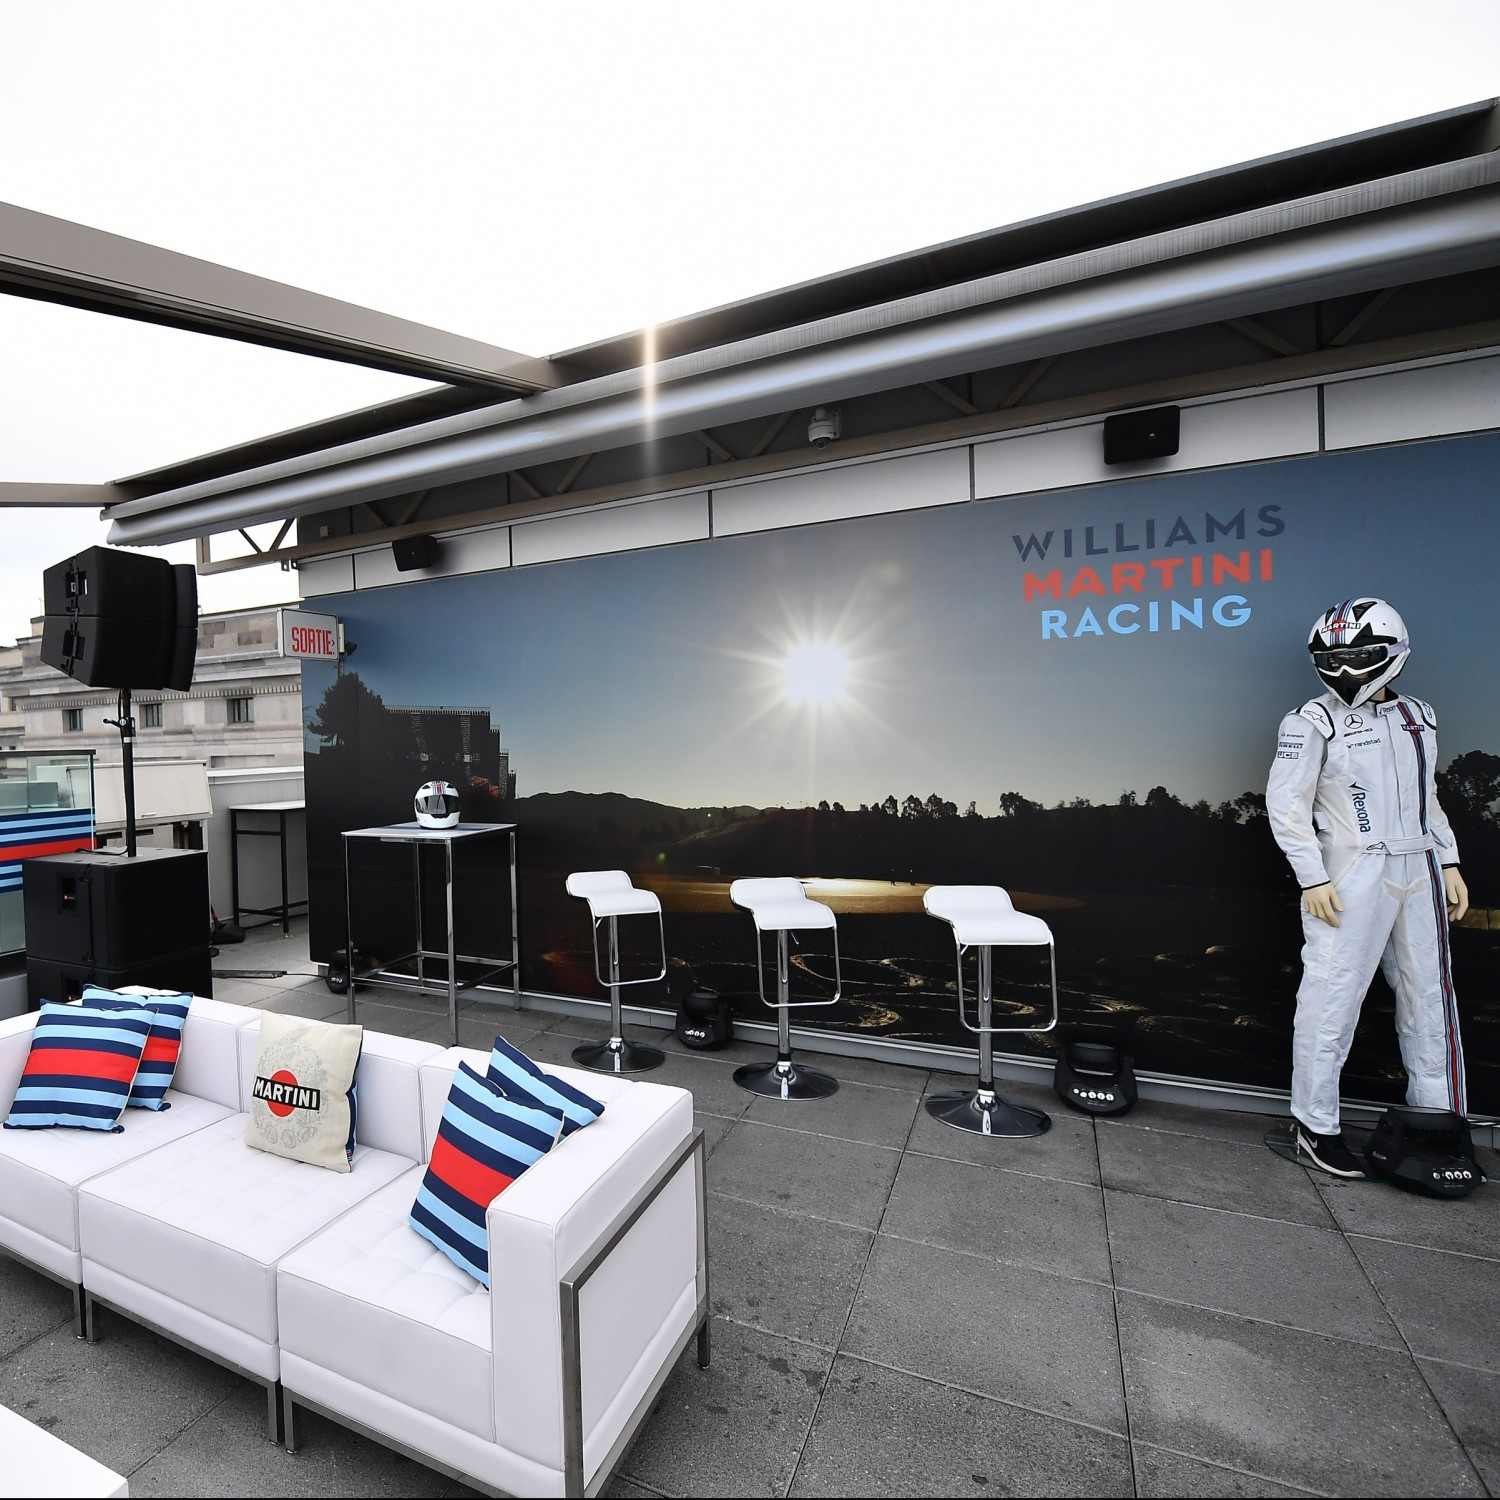 MARTINI williams racing montreal grand prix .Exterior